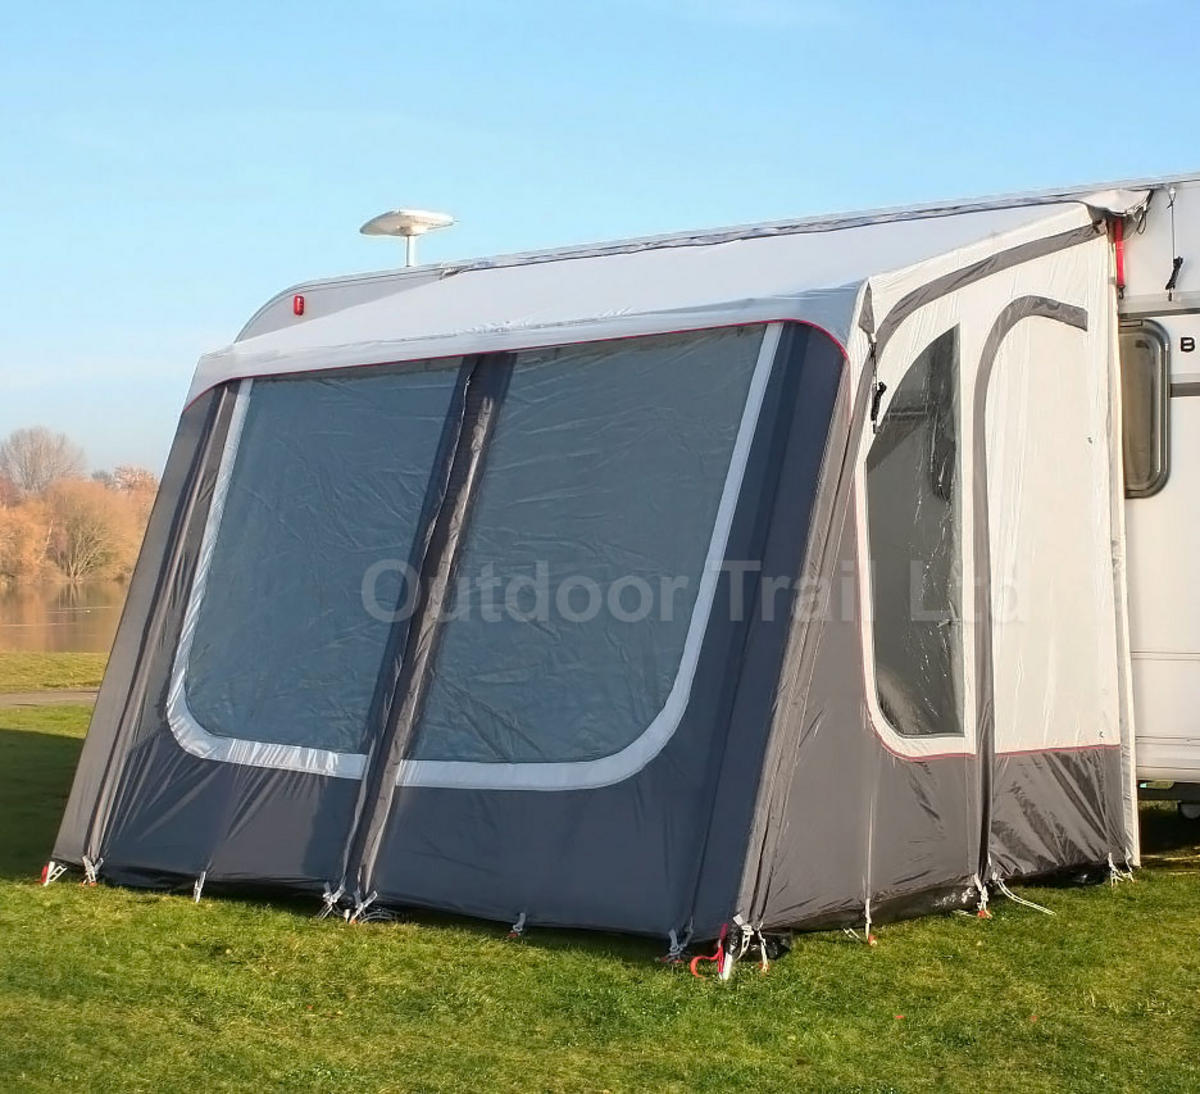 Rv Rollout Awning. Automatic Rollout Awnings